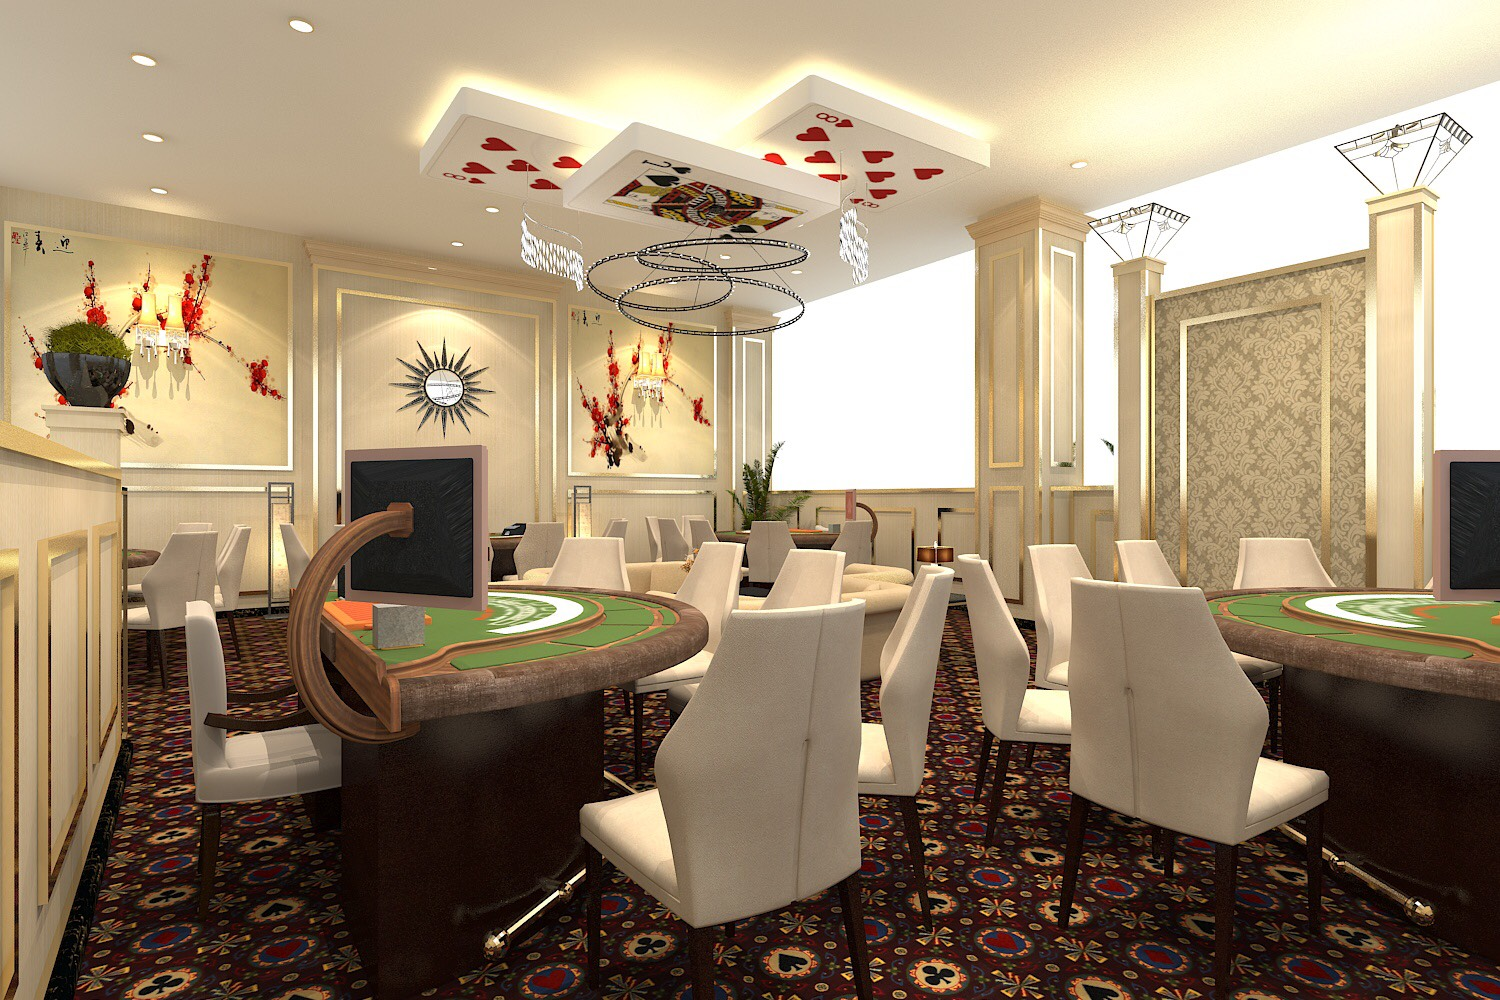 Khmer Interior Casino Casino-IP1 in Cambodia